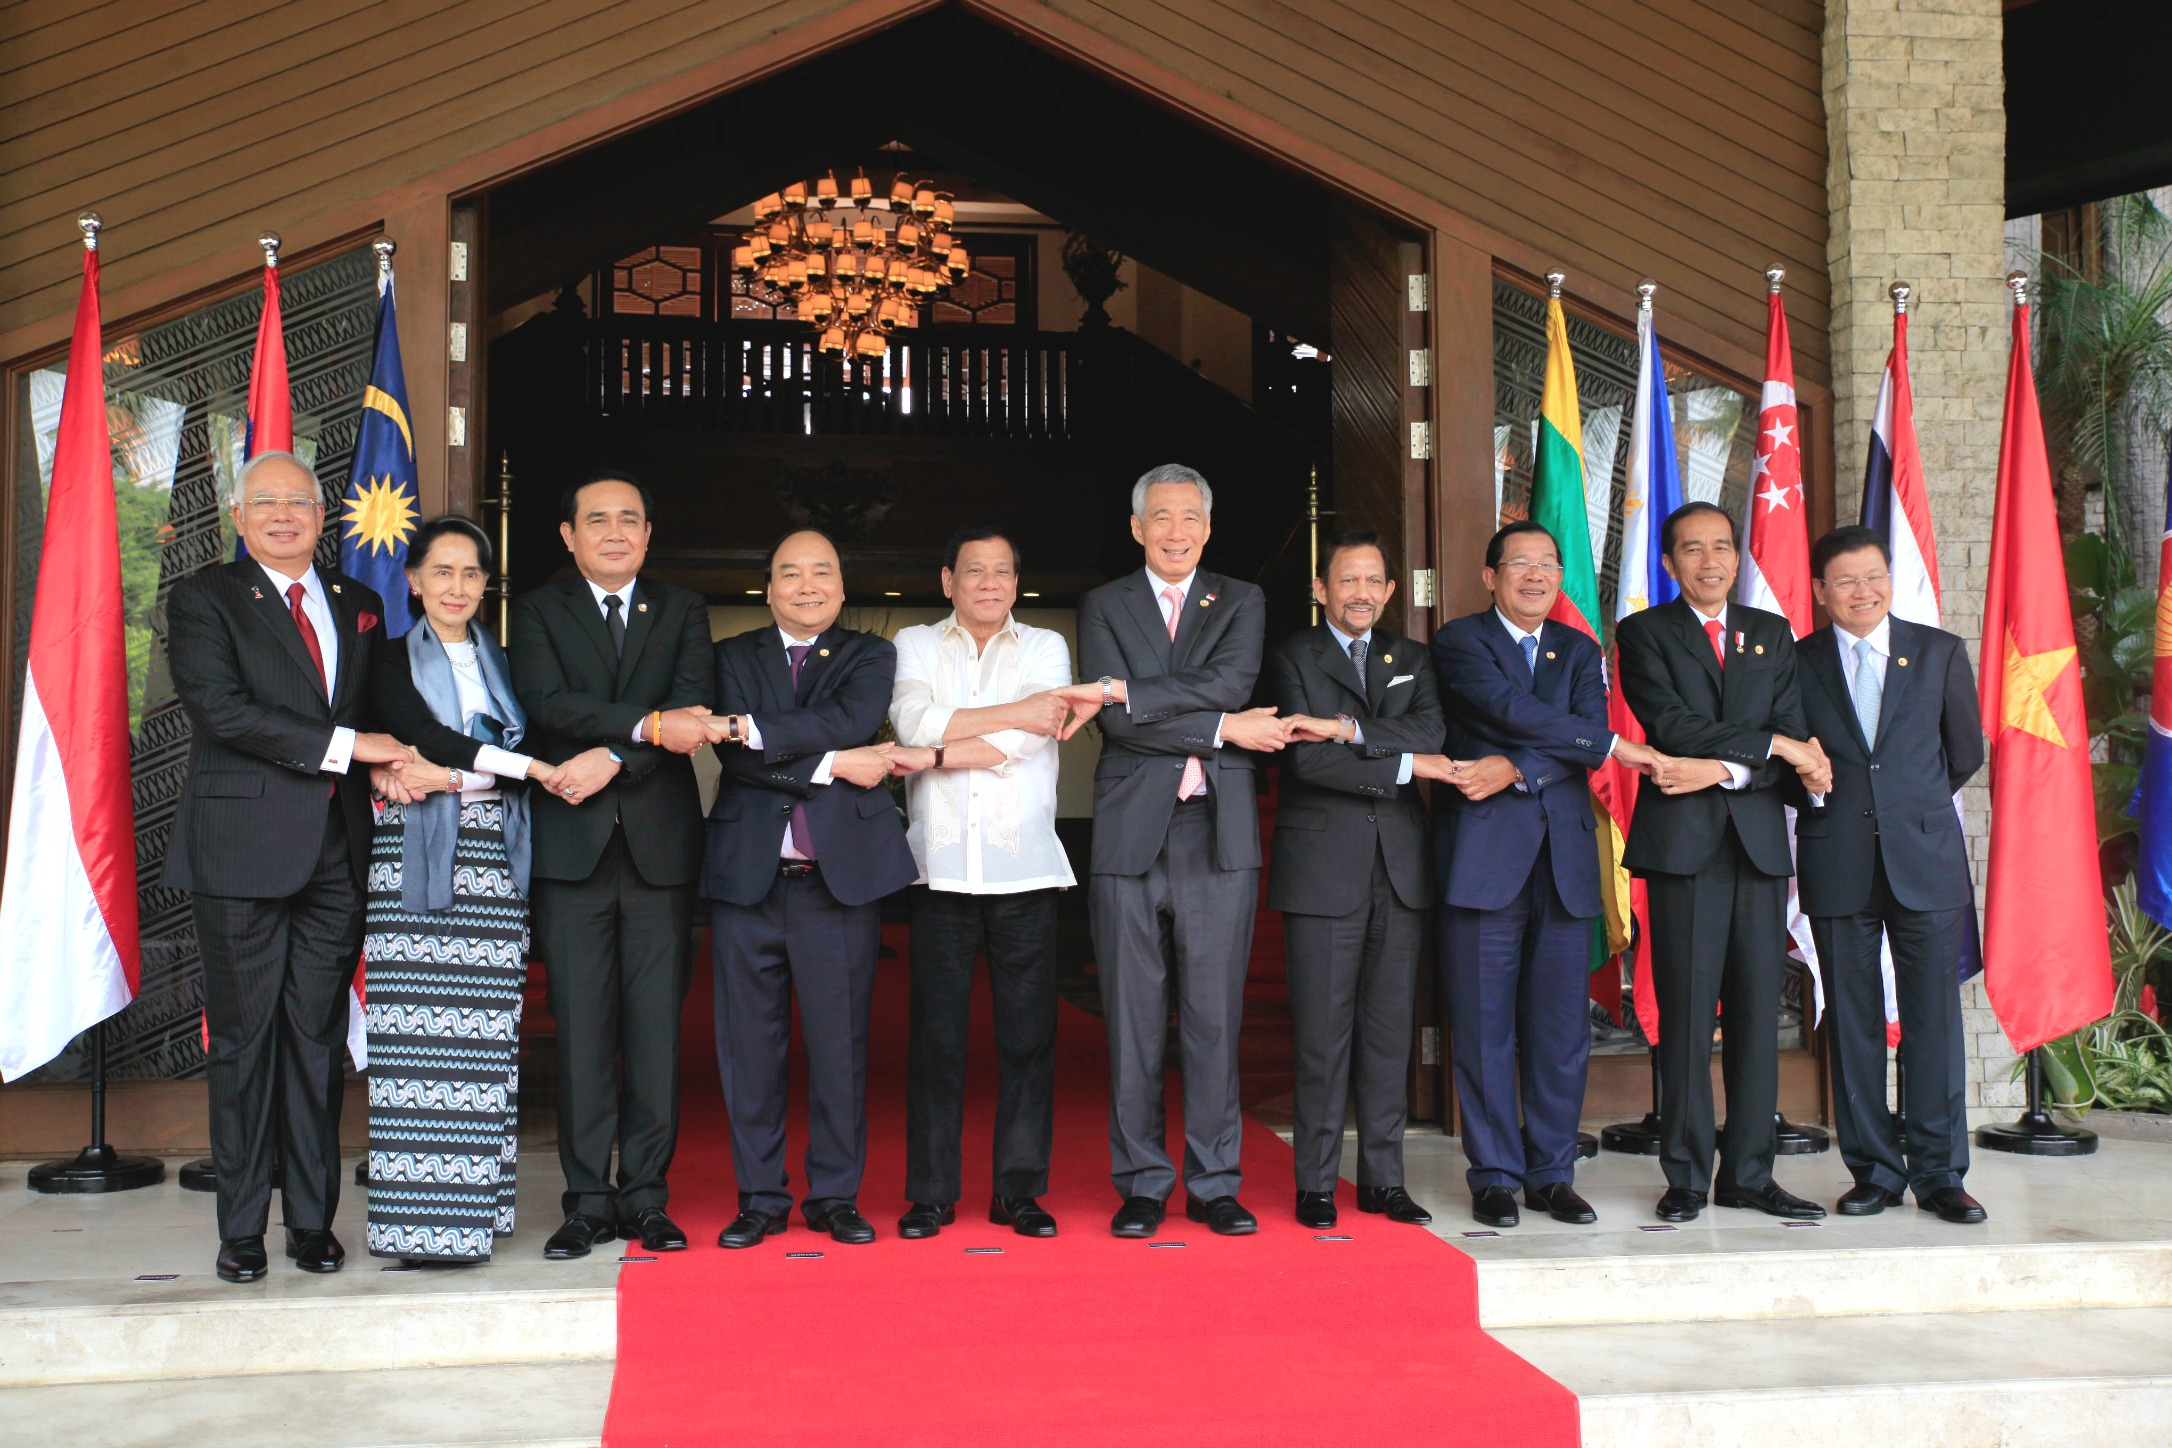 Malaysian Prime Minister Najib Razak (1st L), Myanmar State Counsellor Aung San Suu Kyi (2nd L), Thailand Prime Minister Prayuth Chan-o-cha (3rd L), Vietnamese Prime Minister Nguyen Xuan Phuc (4th L), Philippine President Rodrigo Duterte (5th L), Singapore Prime Minister Lee Hsien Loong (5th R), Sultan of Brunei Hassanal Bolkiah (4th R), Cambodian Prime Minister Hun Sen (3rd R), Indonesian President Joko Widodo (2nd R), Laos Prime Minister Thongloun Sisoulith (1st R) hold hands during the group photo of the 30th Association of Southeast Asian Nations (ASEAN) Summit at the Coconut Palace in Pasay City on Saturday, April 29, 2017. Pool Photo